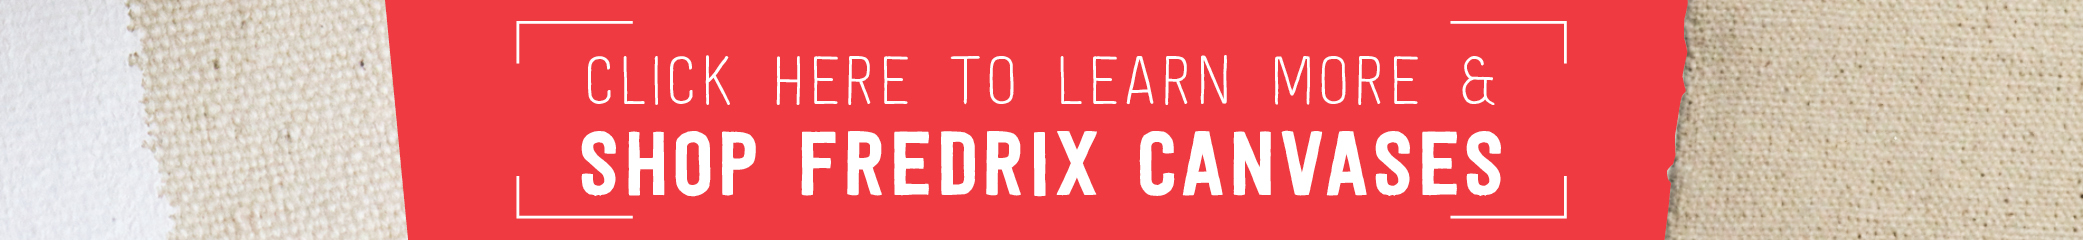 Click here to learn more & shop Fredrix canvases!